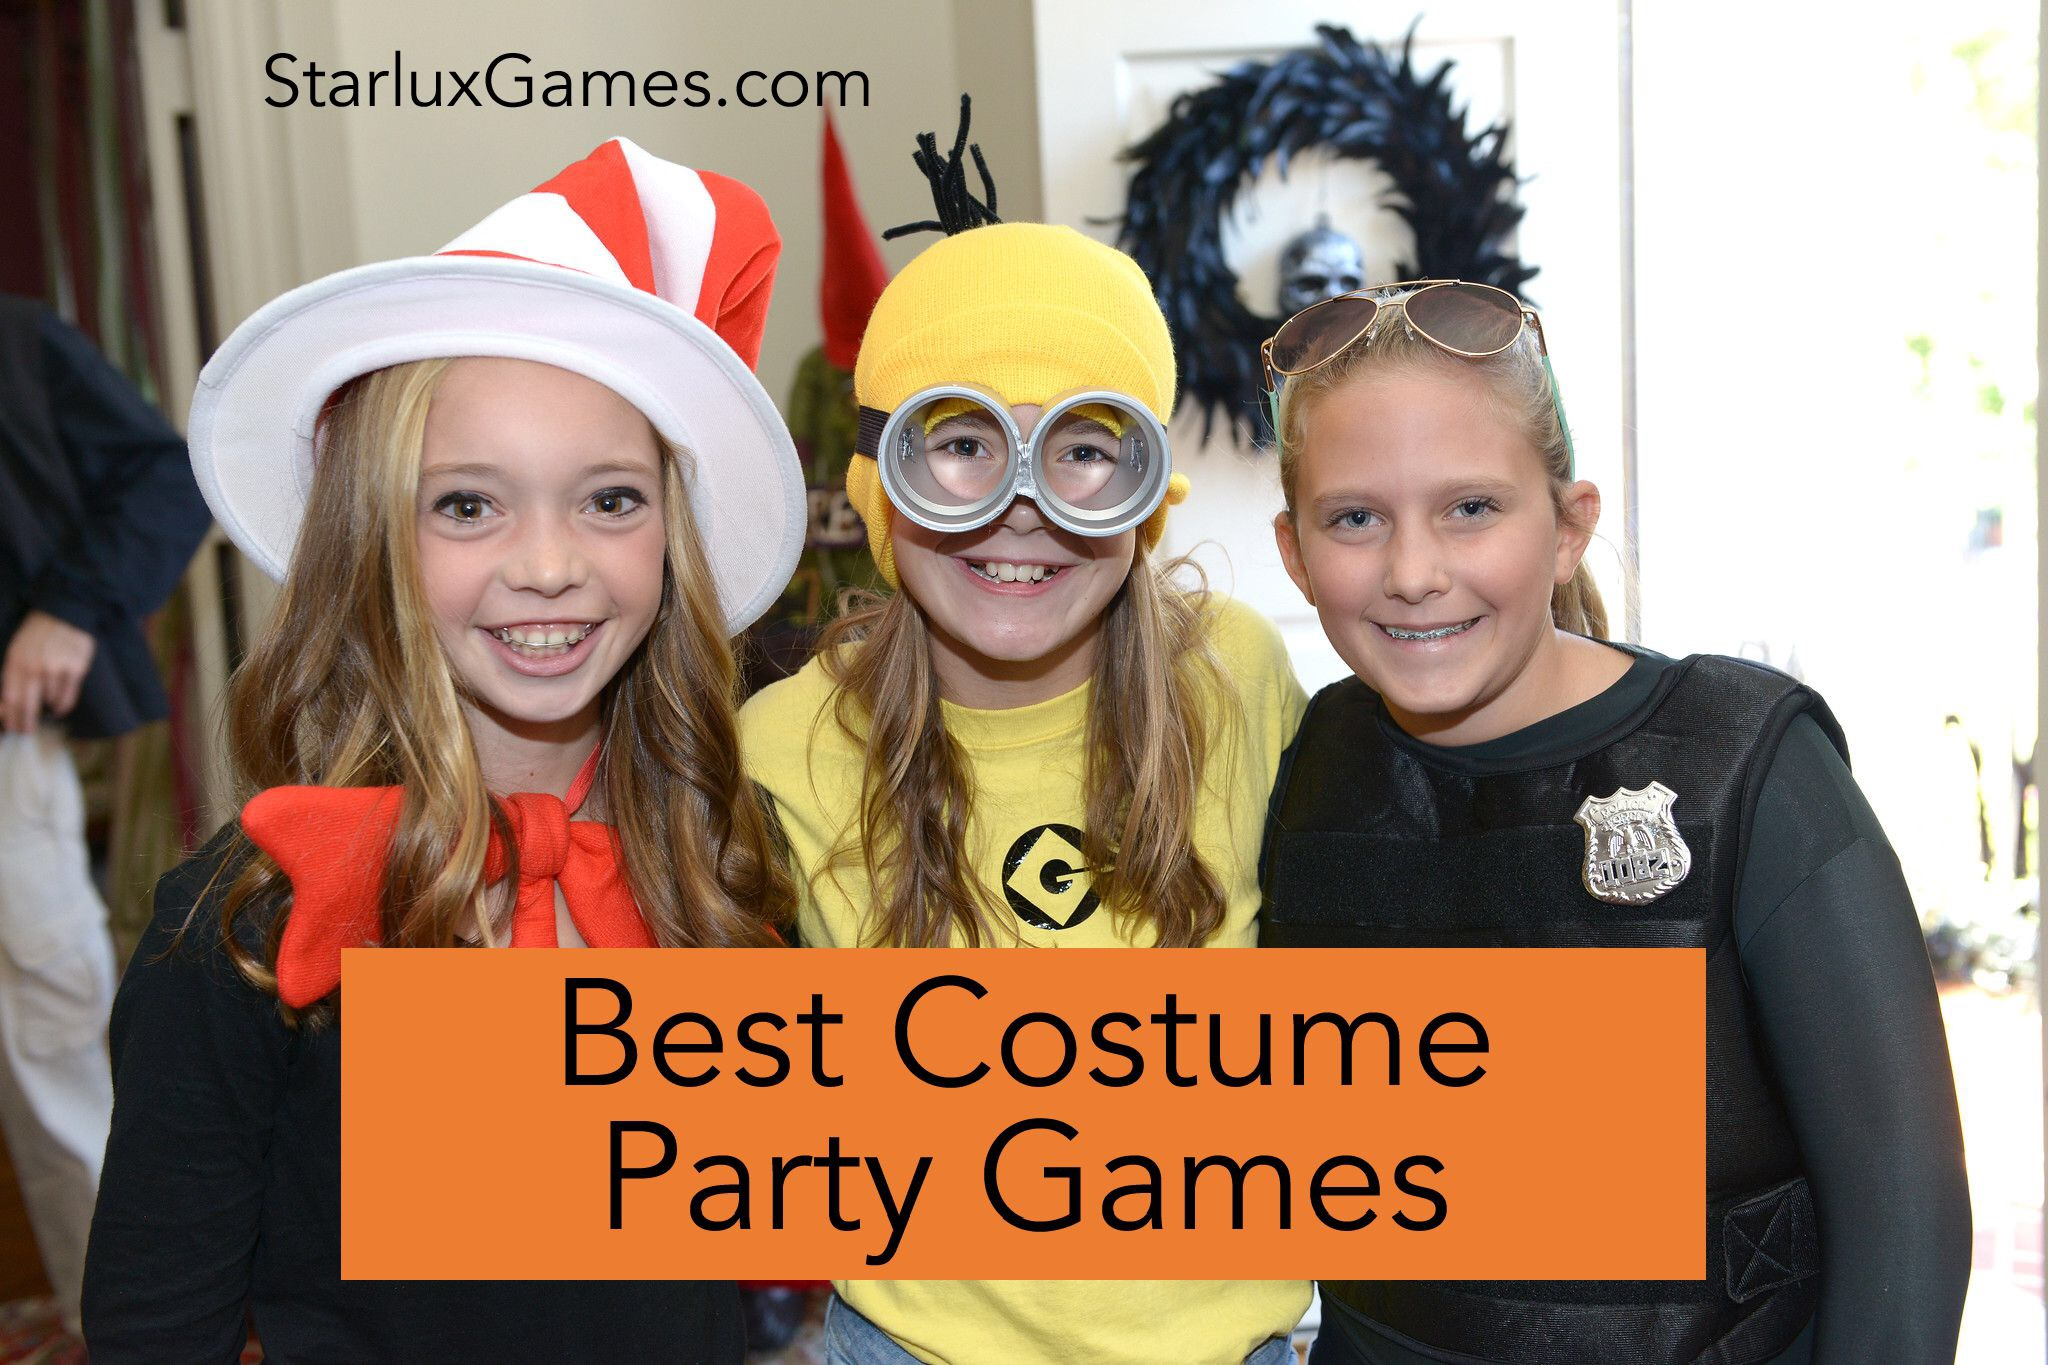 Three girls pose together smiling at the camera in Halloween costumes.